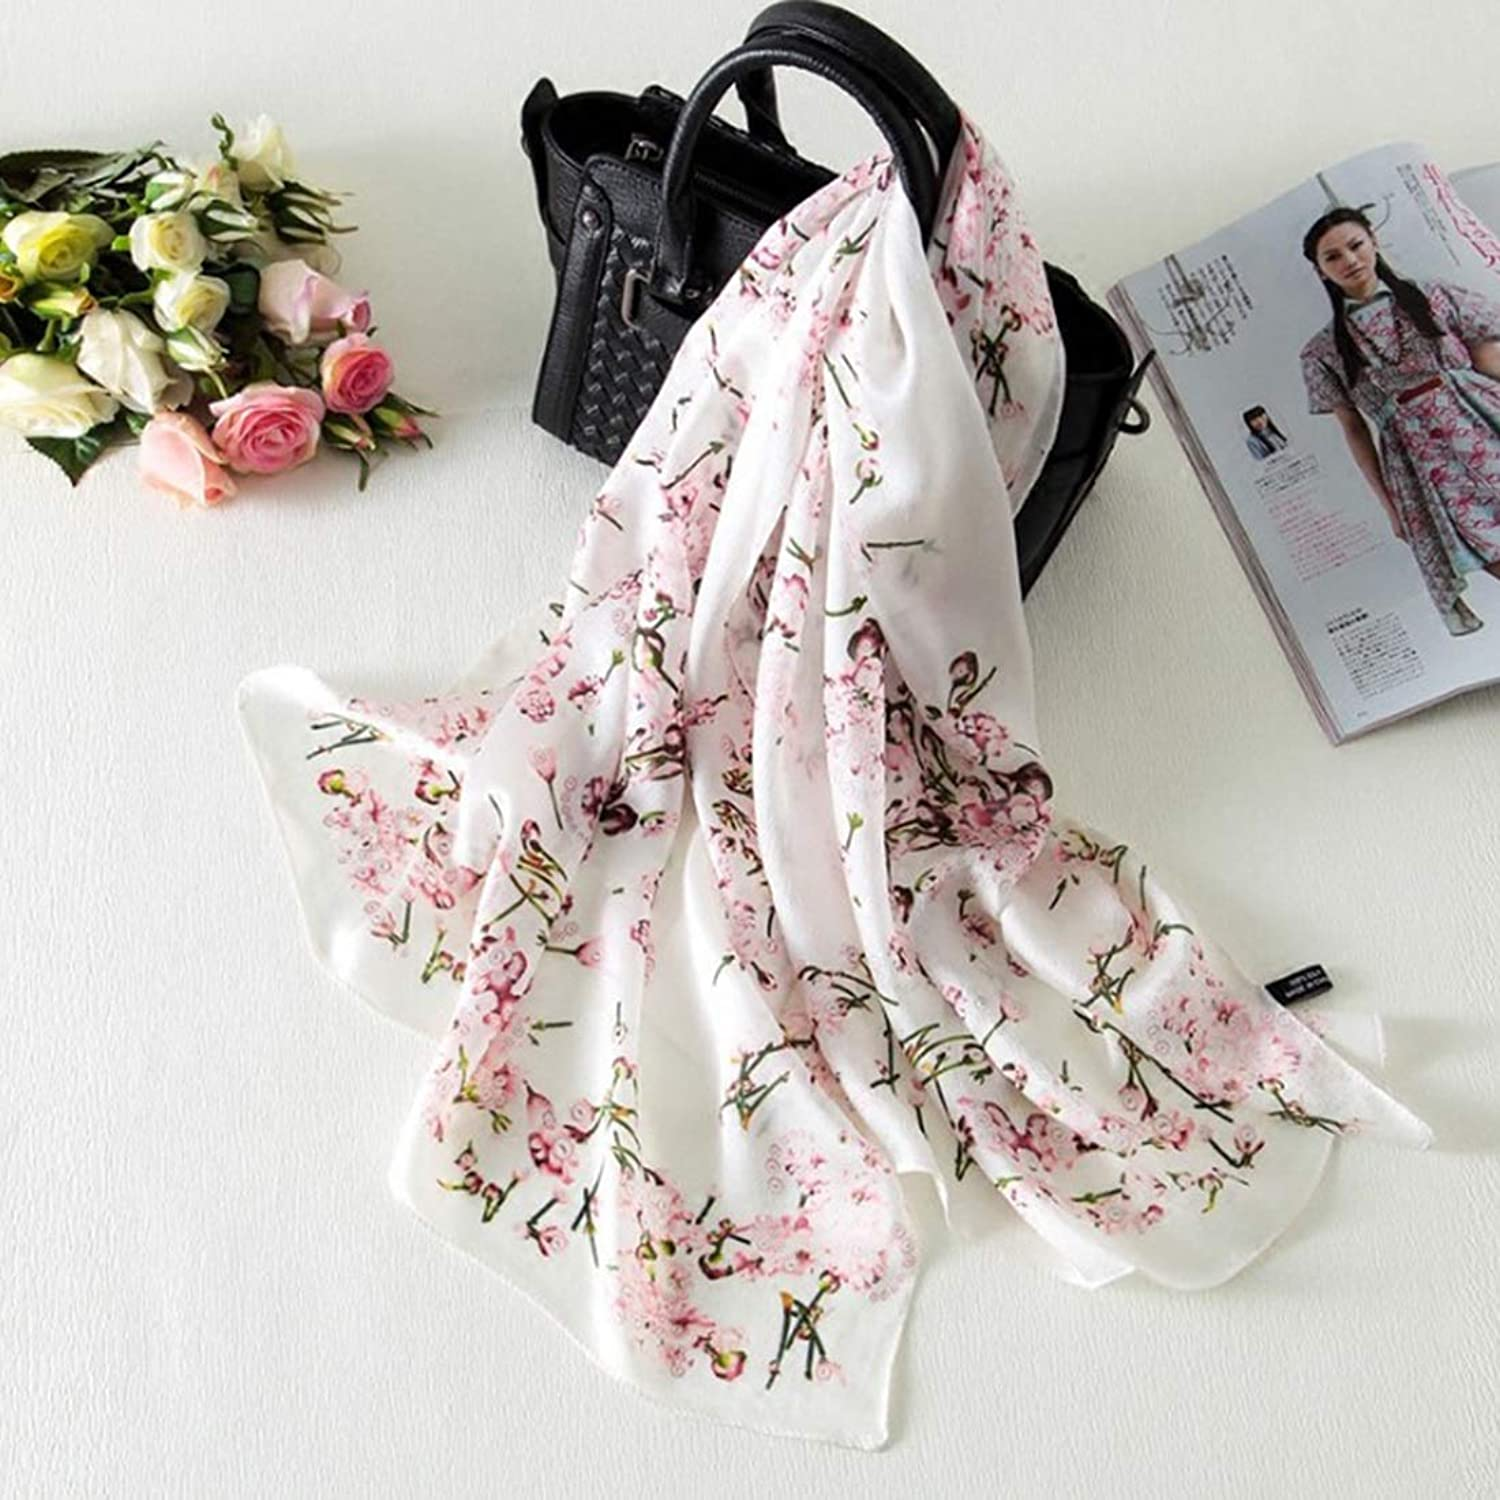 CEFULTY Exquisite Cherry Blossom Printed Soft Silk MultiFunctional Scarf Seaside Sunscreen Shawl (color   White)